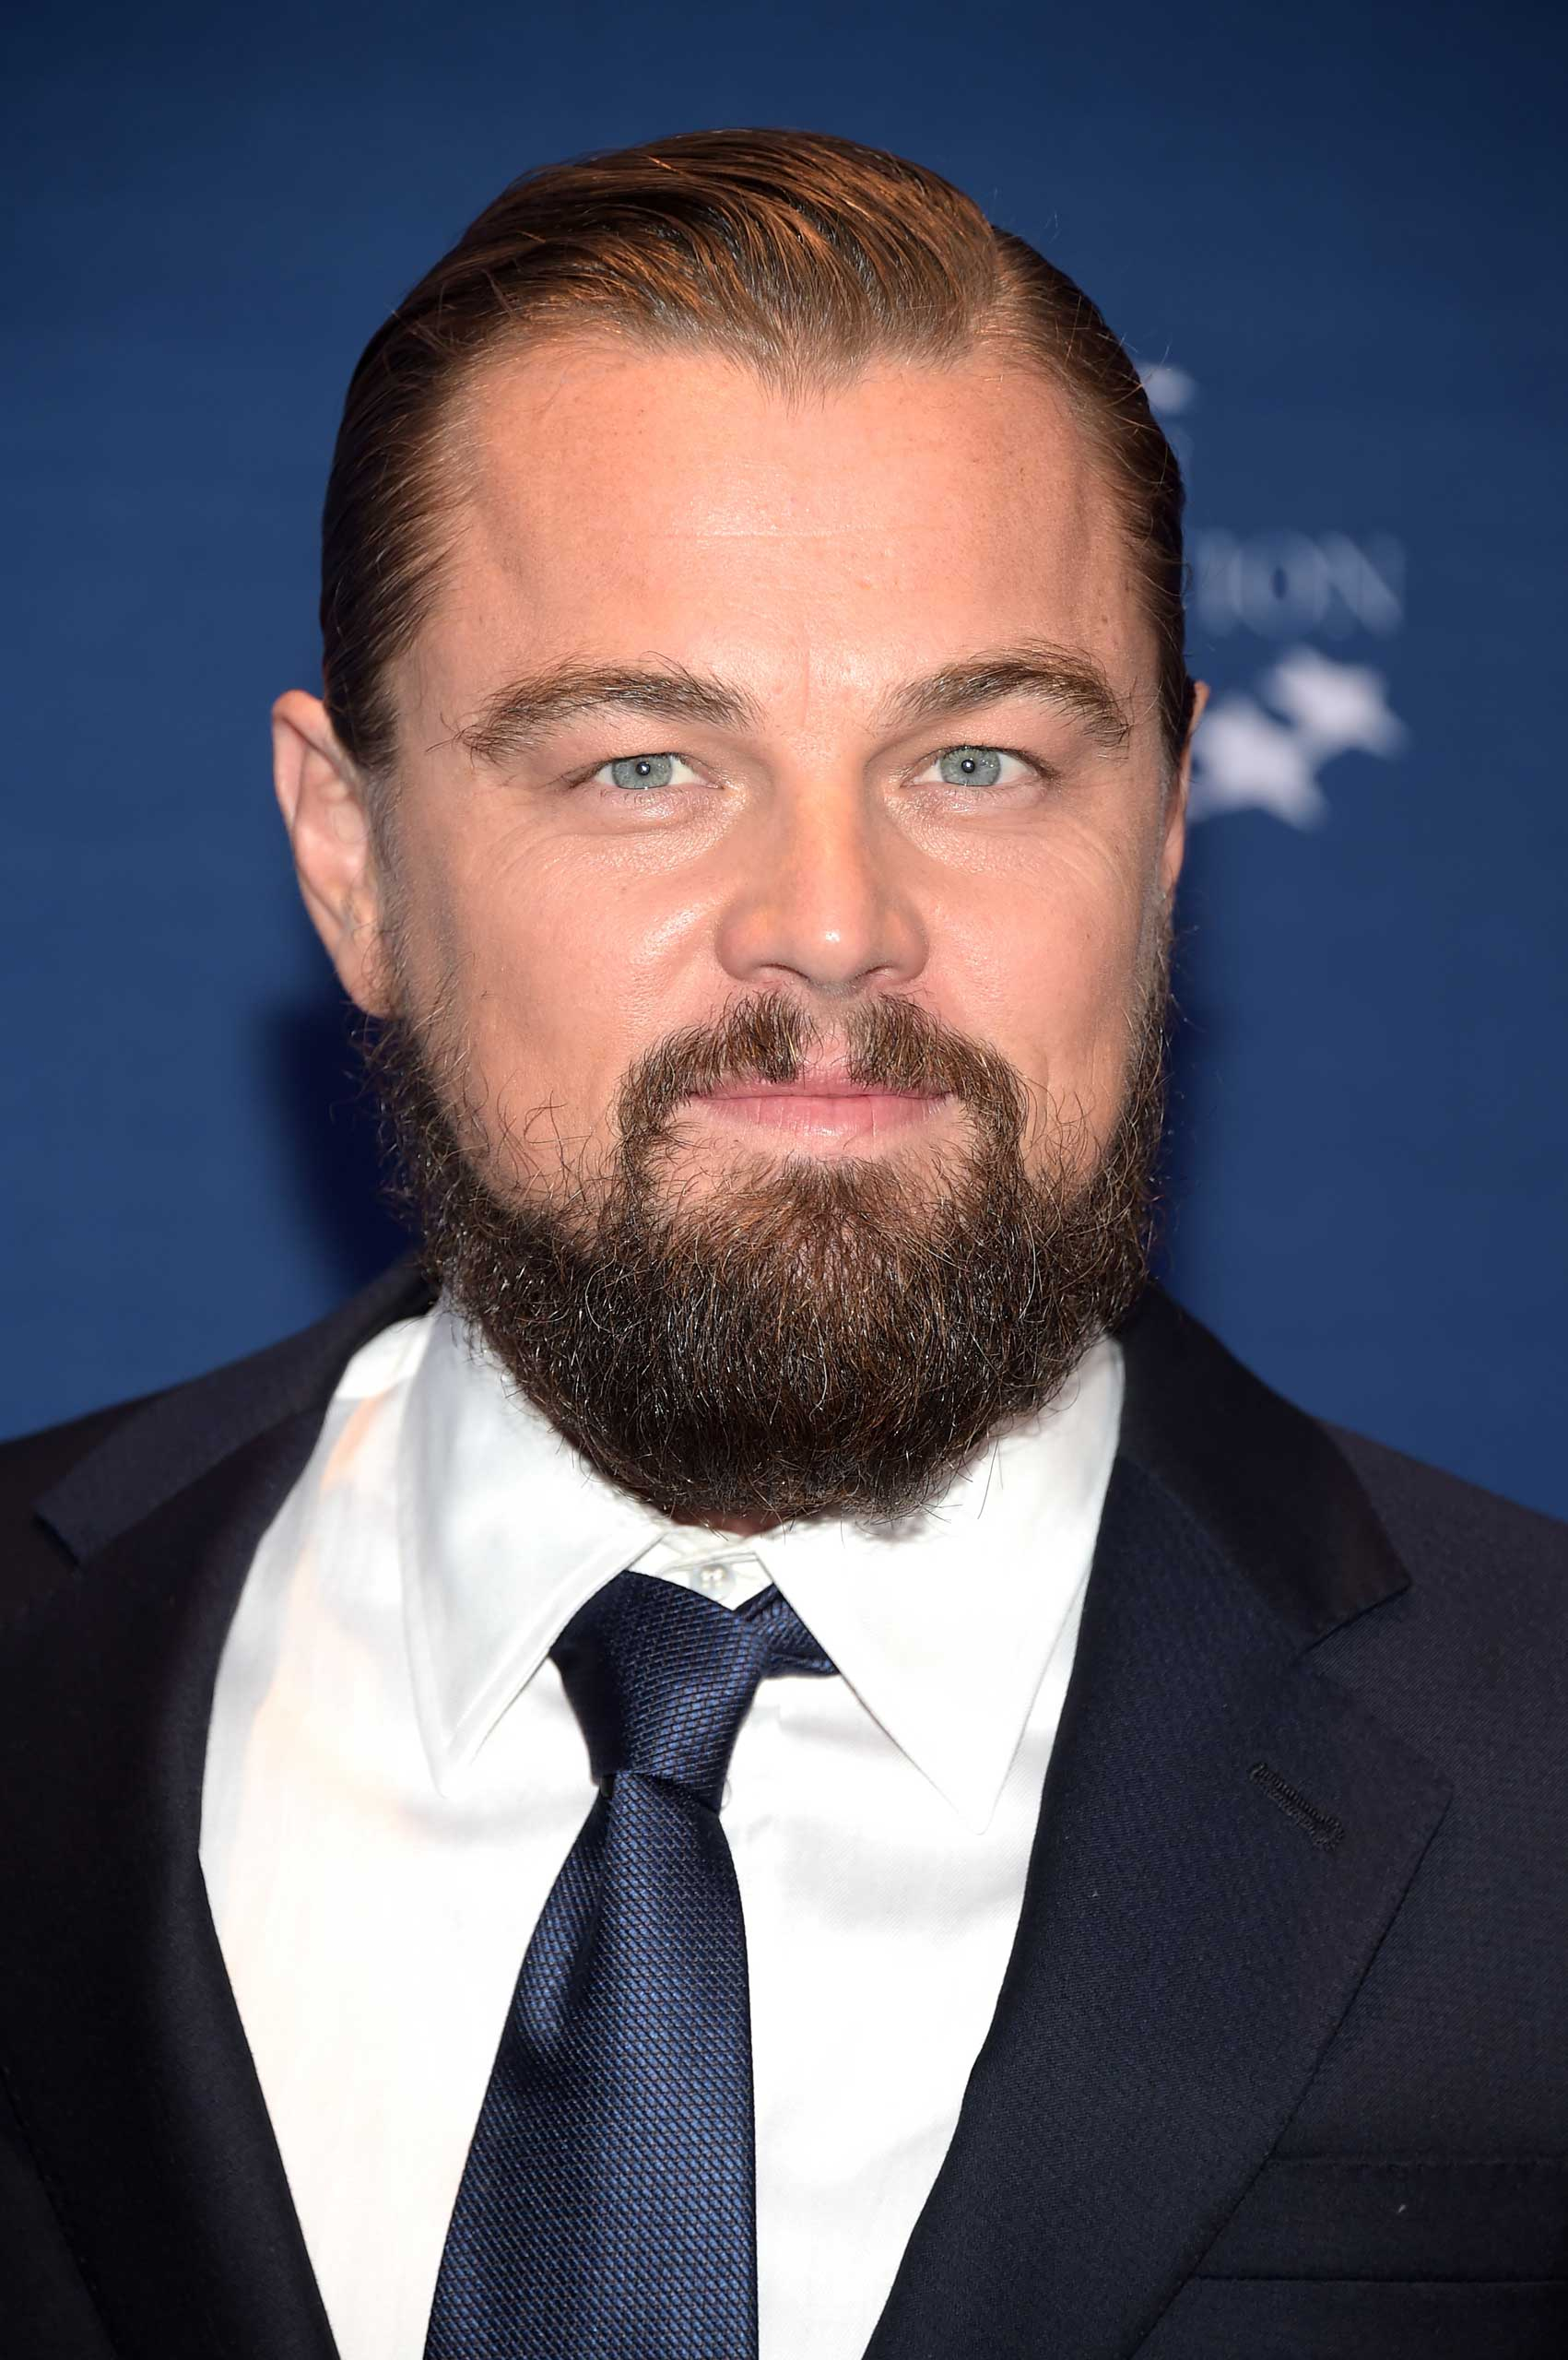 Leonardo Dicaprio at the 8th Annual Clinton Global Citizen Awards at Sheraton Times Square on Sept. 21, 2014 in New York.